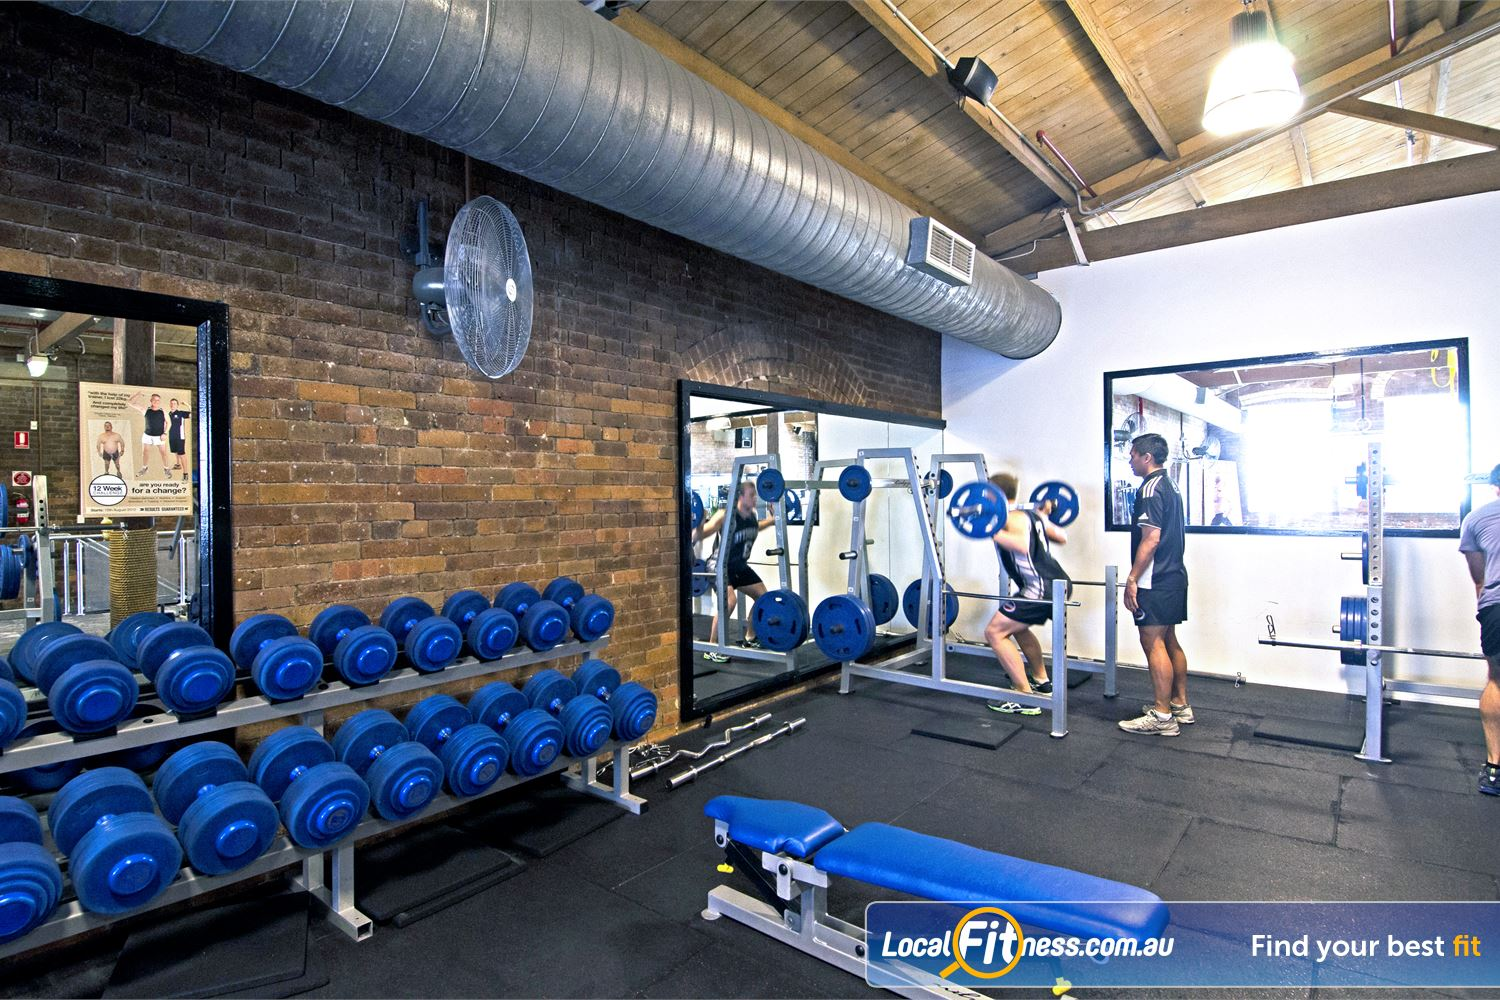 Goodlife Health Clubs Edward St Near City East Our Brisbane gym includes a comprehensive range of dumbbells and barbells.